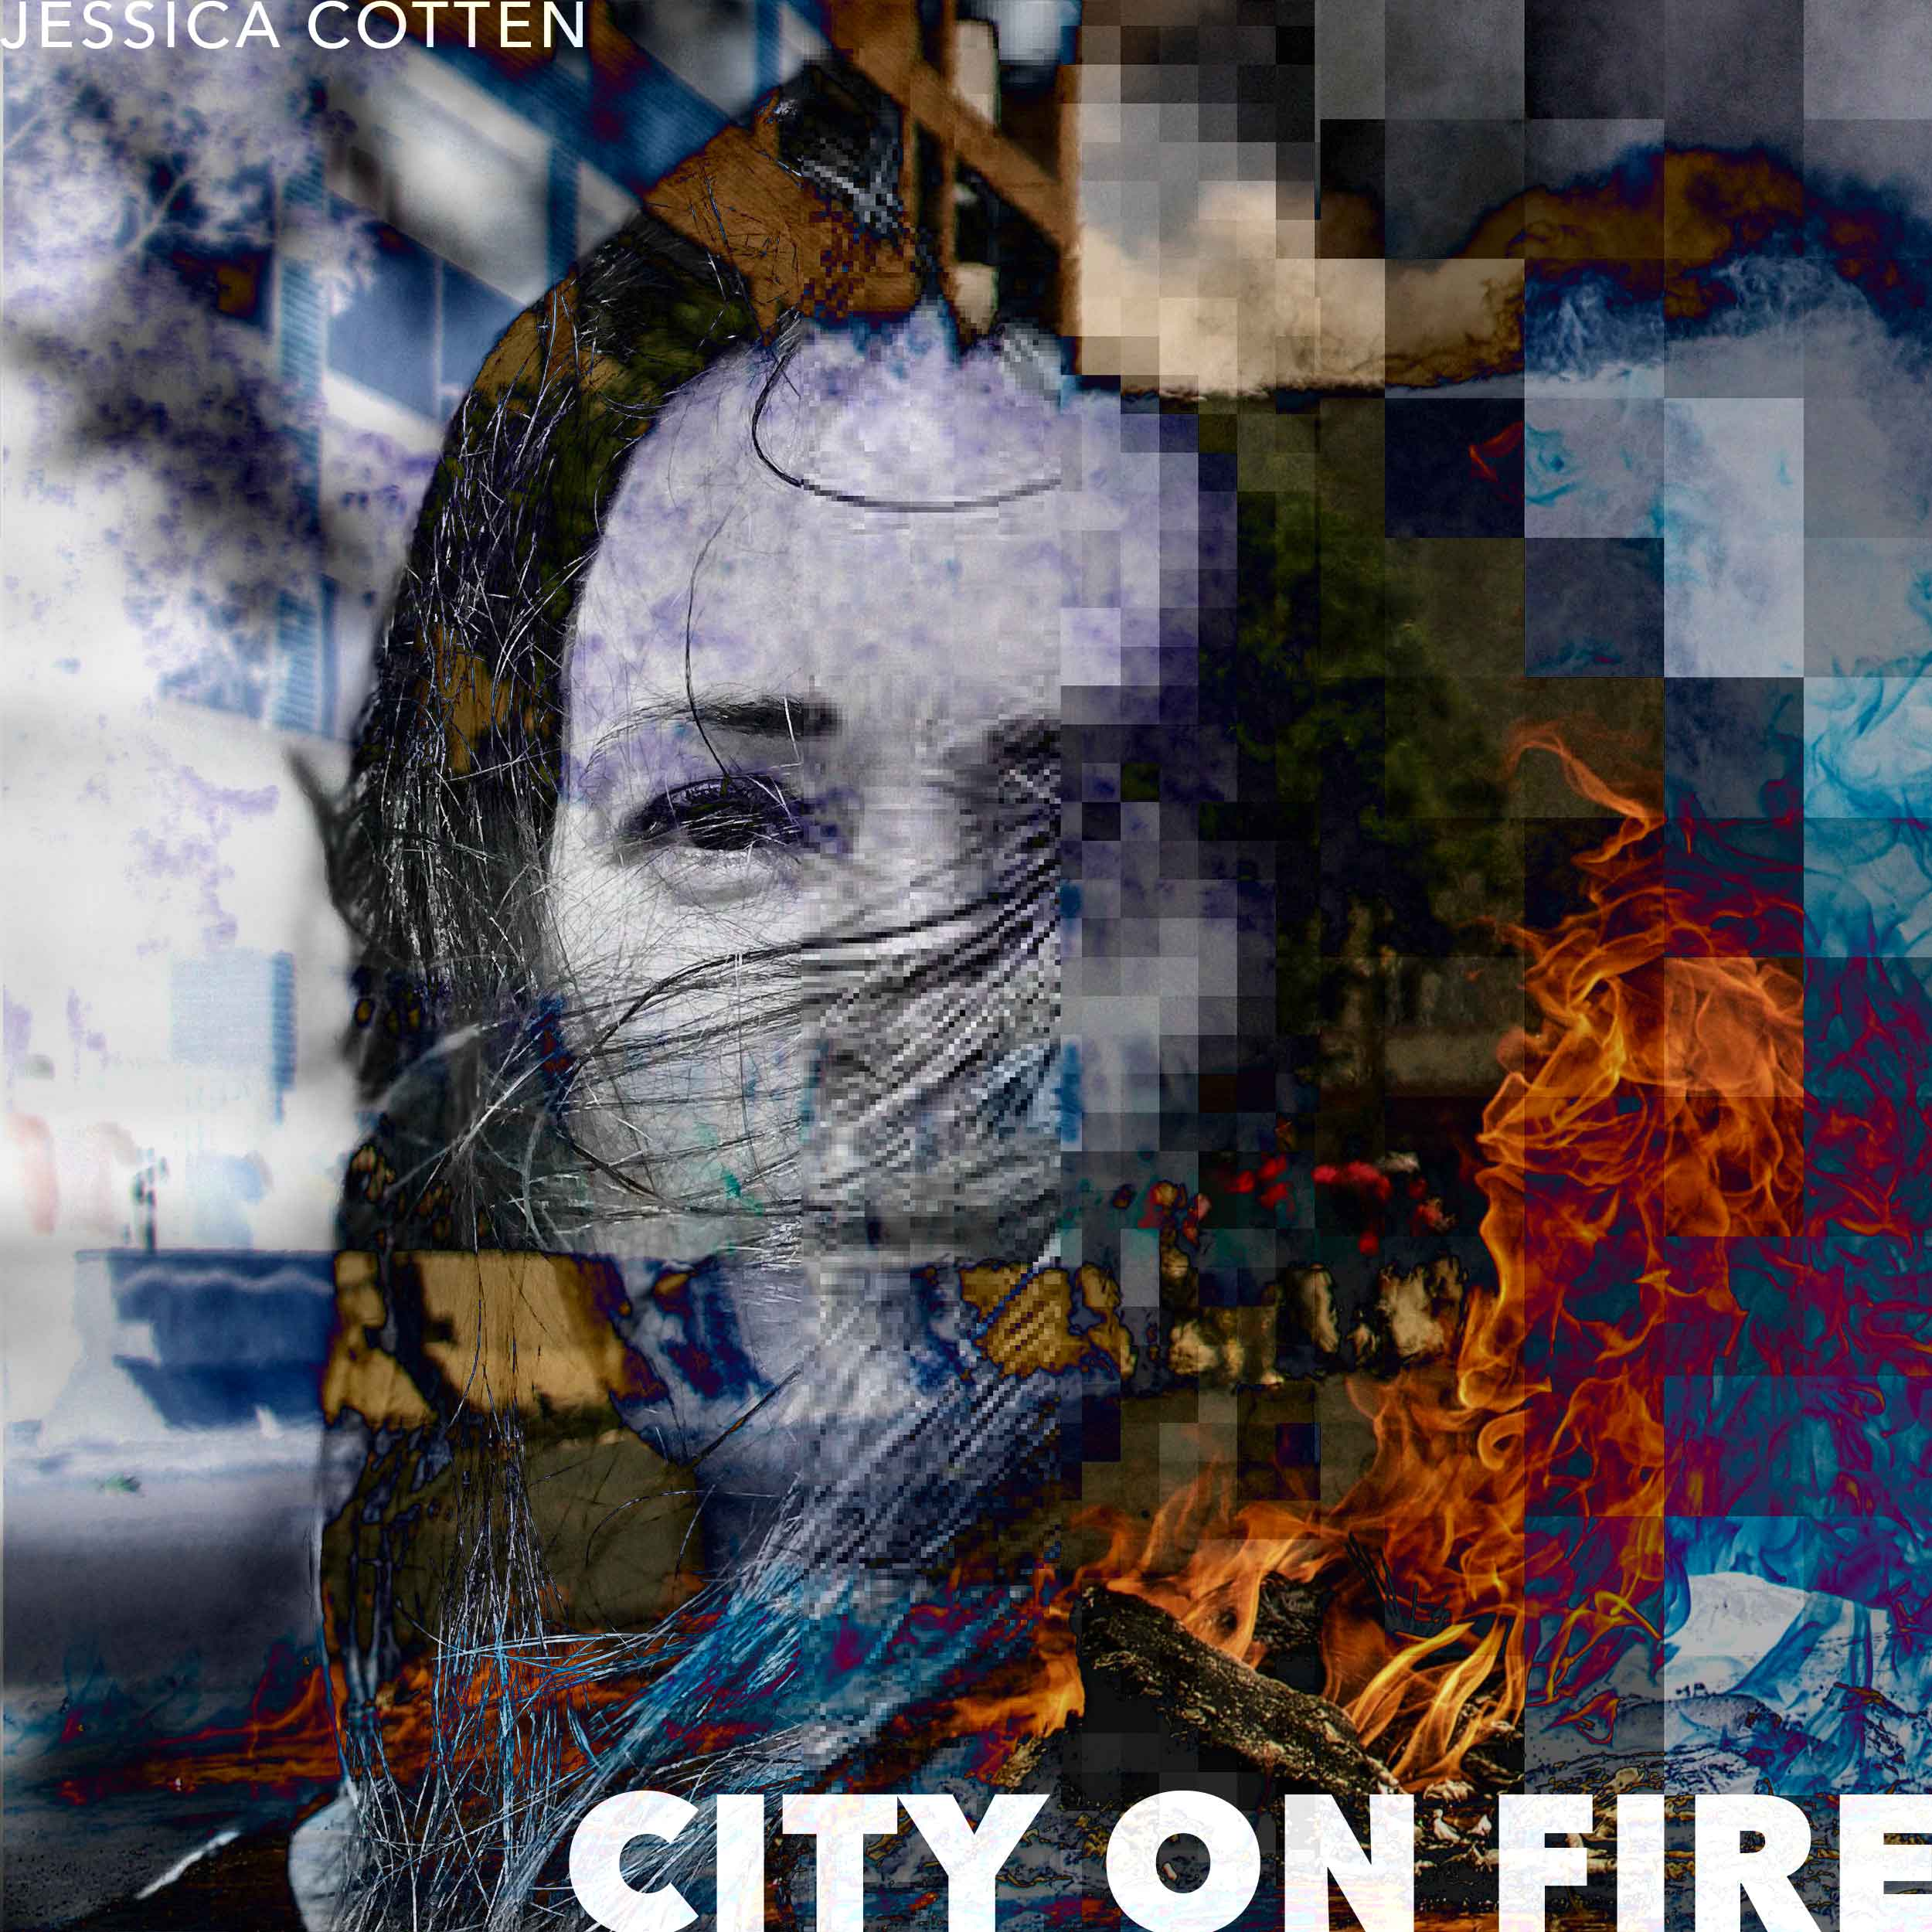 Cover artwork for City On Fire, new single from Jessica Cotten